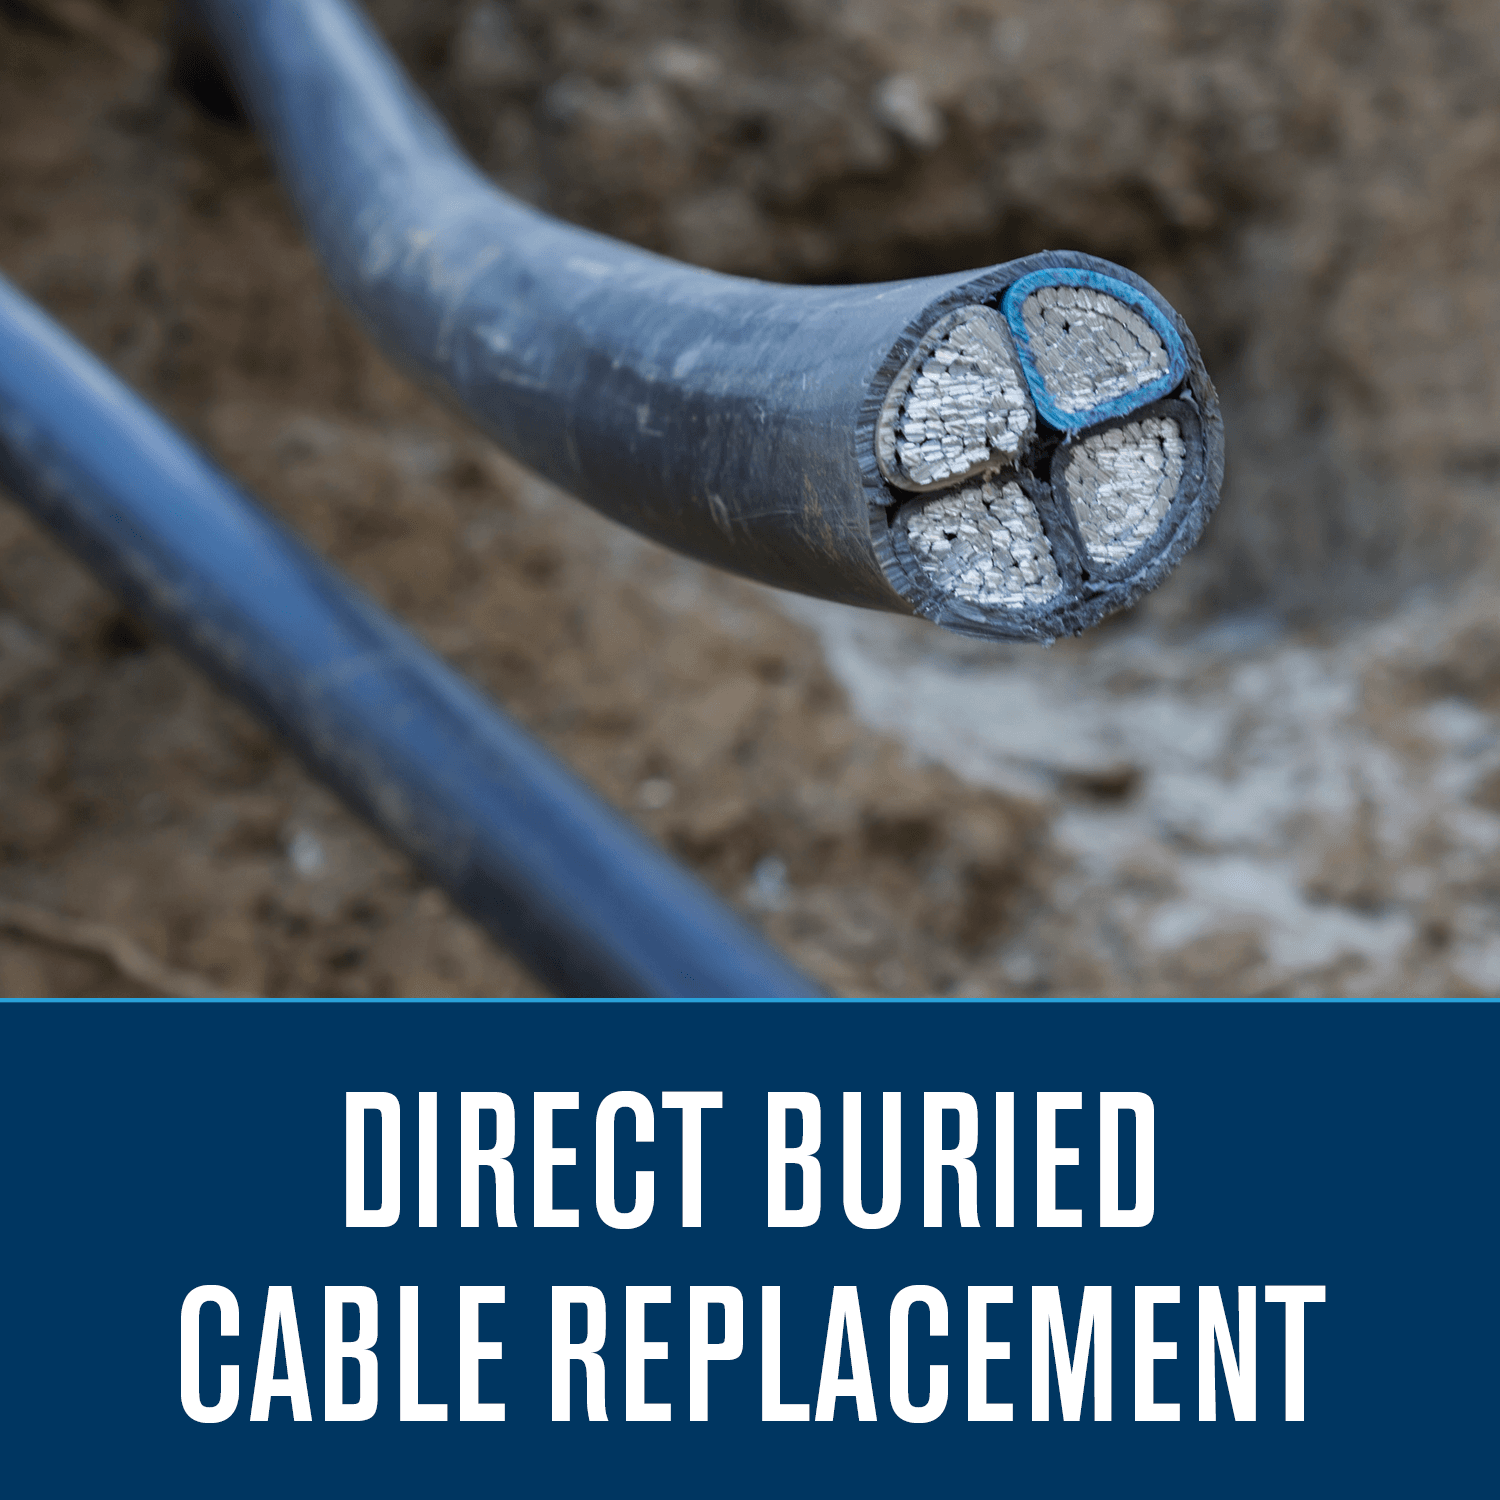 Direct Buried Cable Replacement